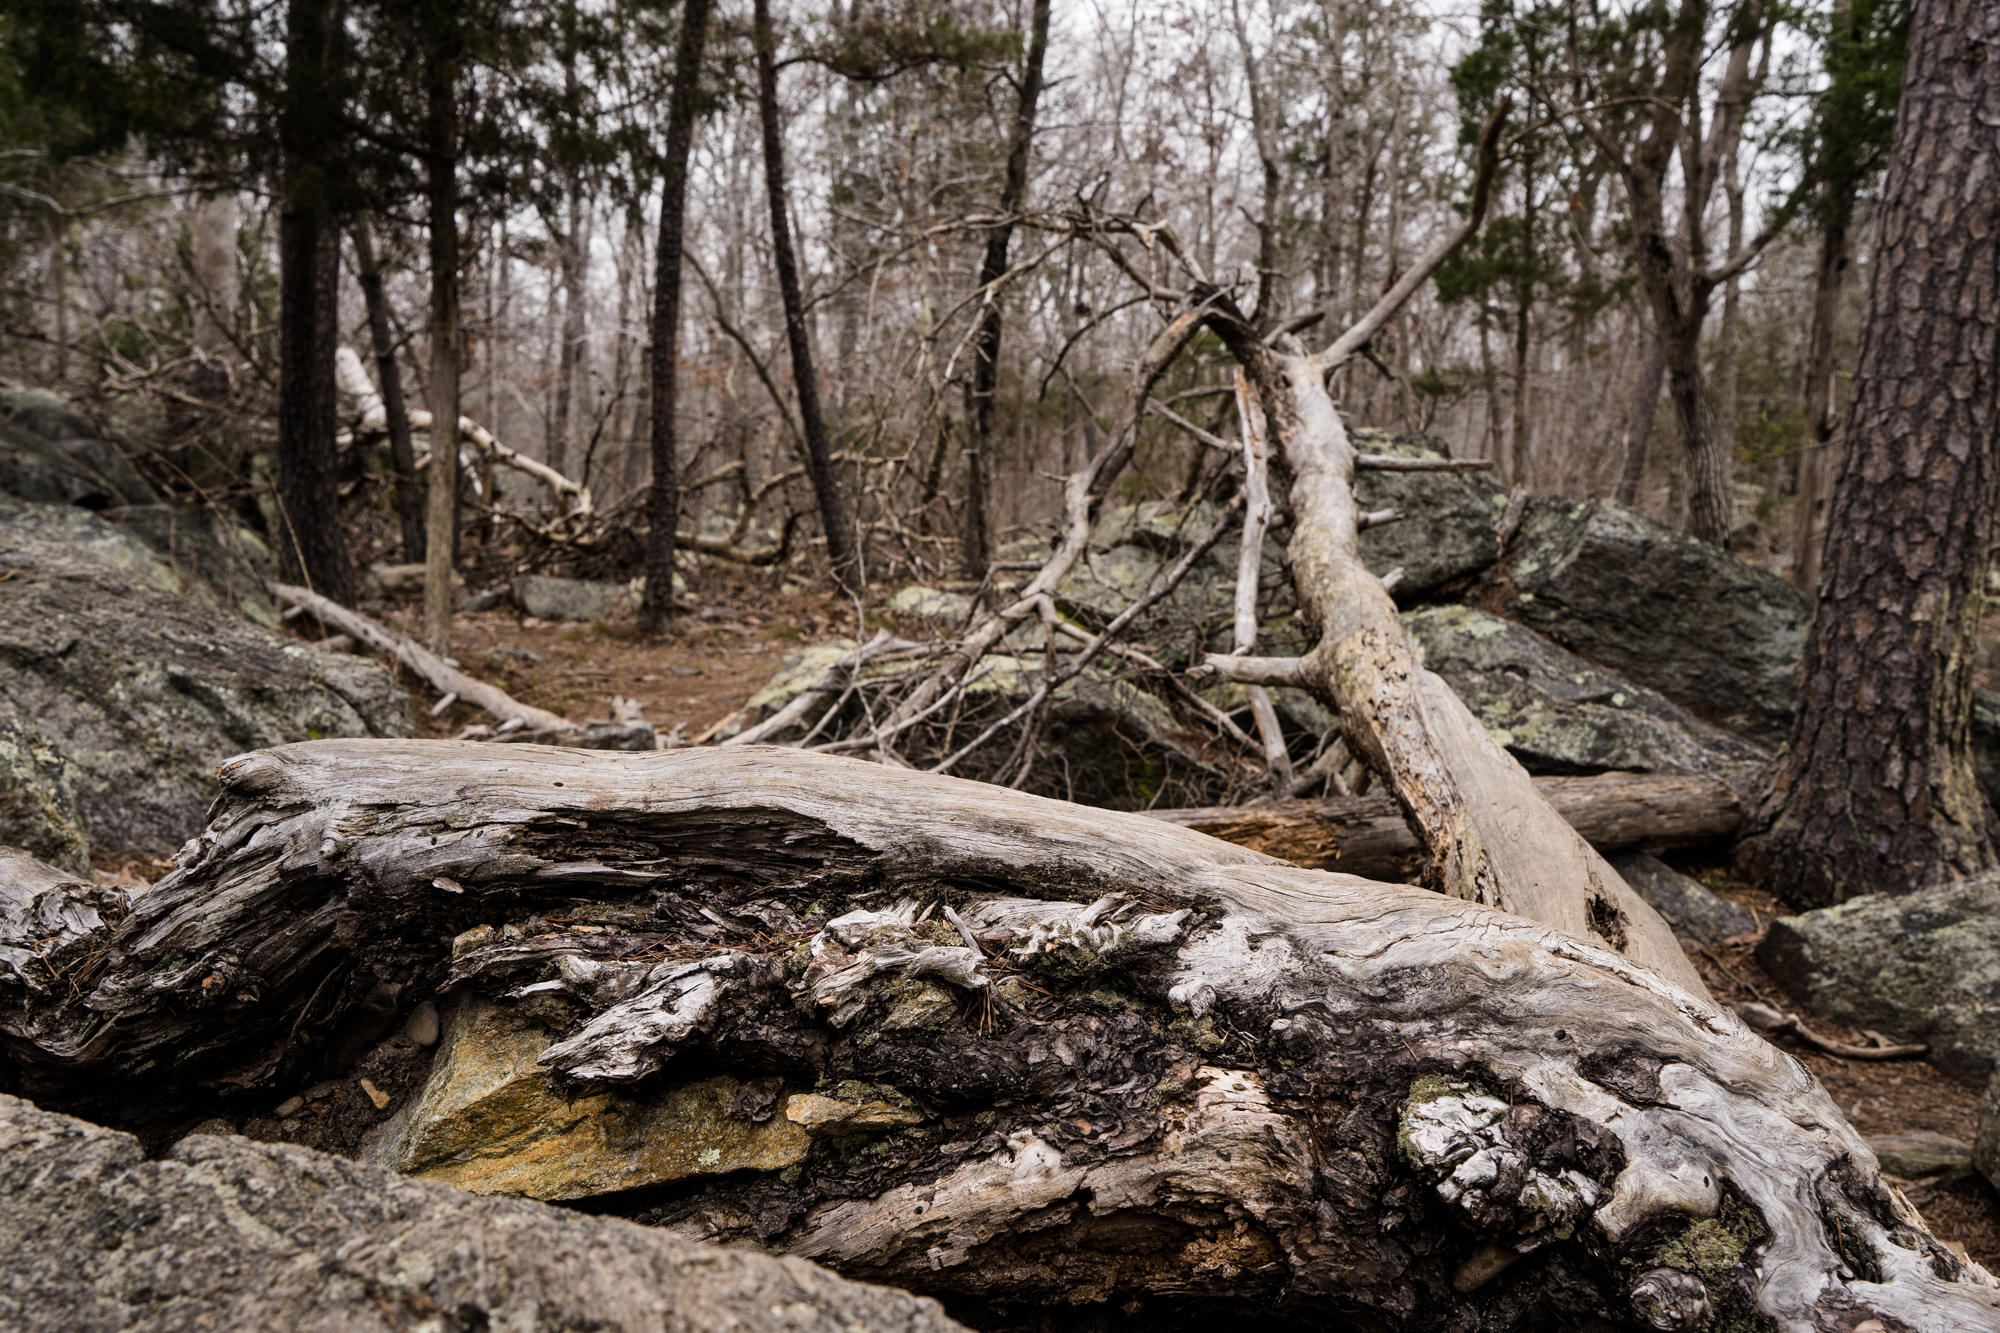 We came across many downed trees along the Billy Goat trail, some likely from the recent flooding. These particular trees were high above the water lines, full of interesting textures and lines.